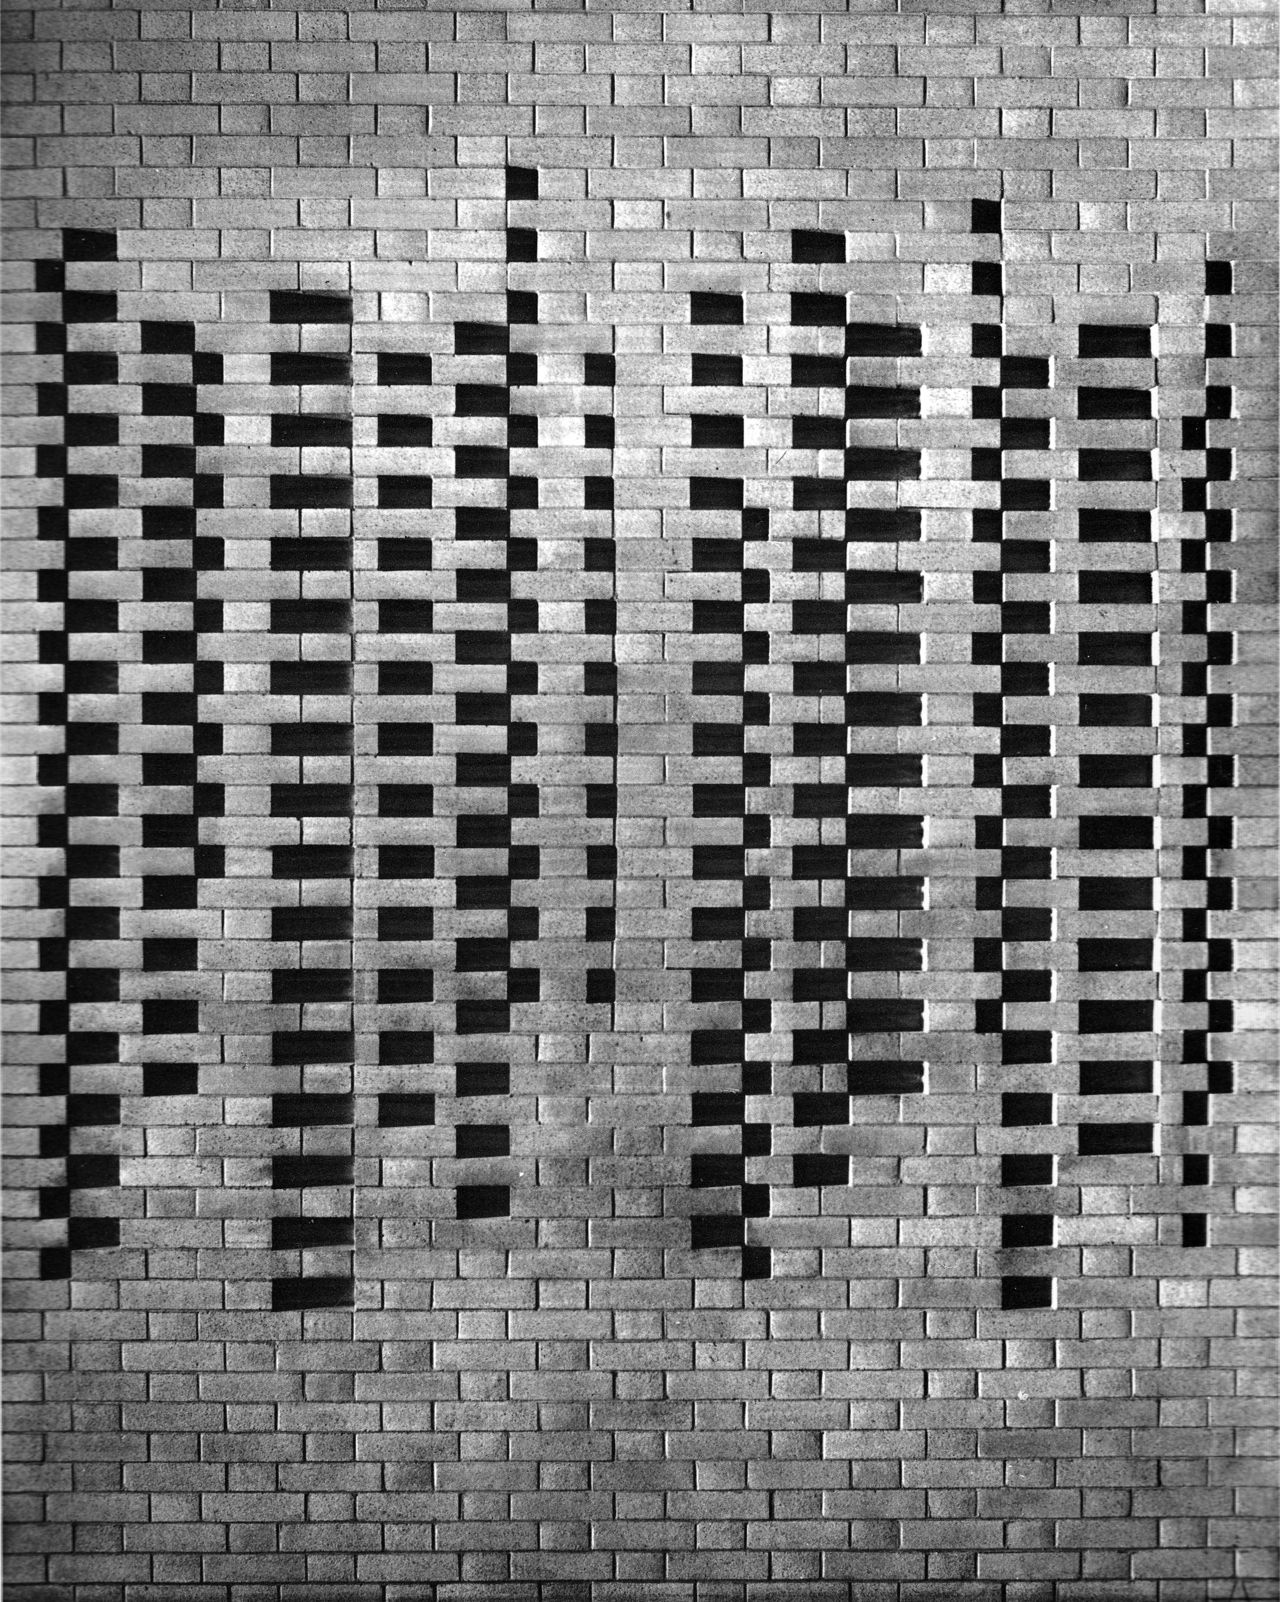 betonbabe:  JOSEF ALBERS   BRICK WALL DETAIL, HARVARD UNIVERSITY, 1949-50